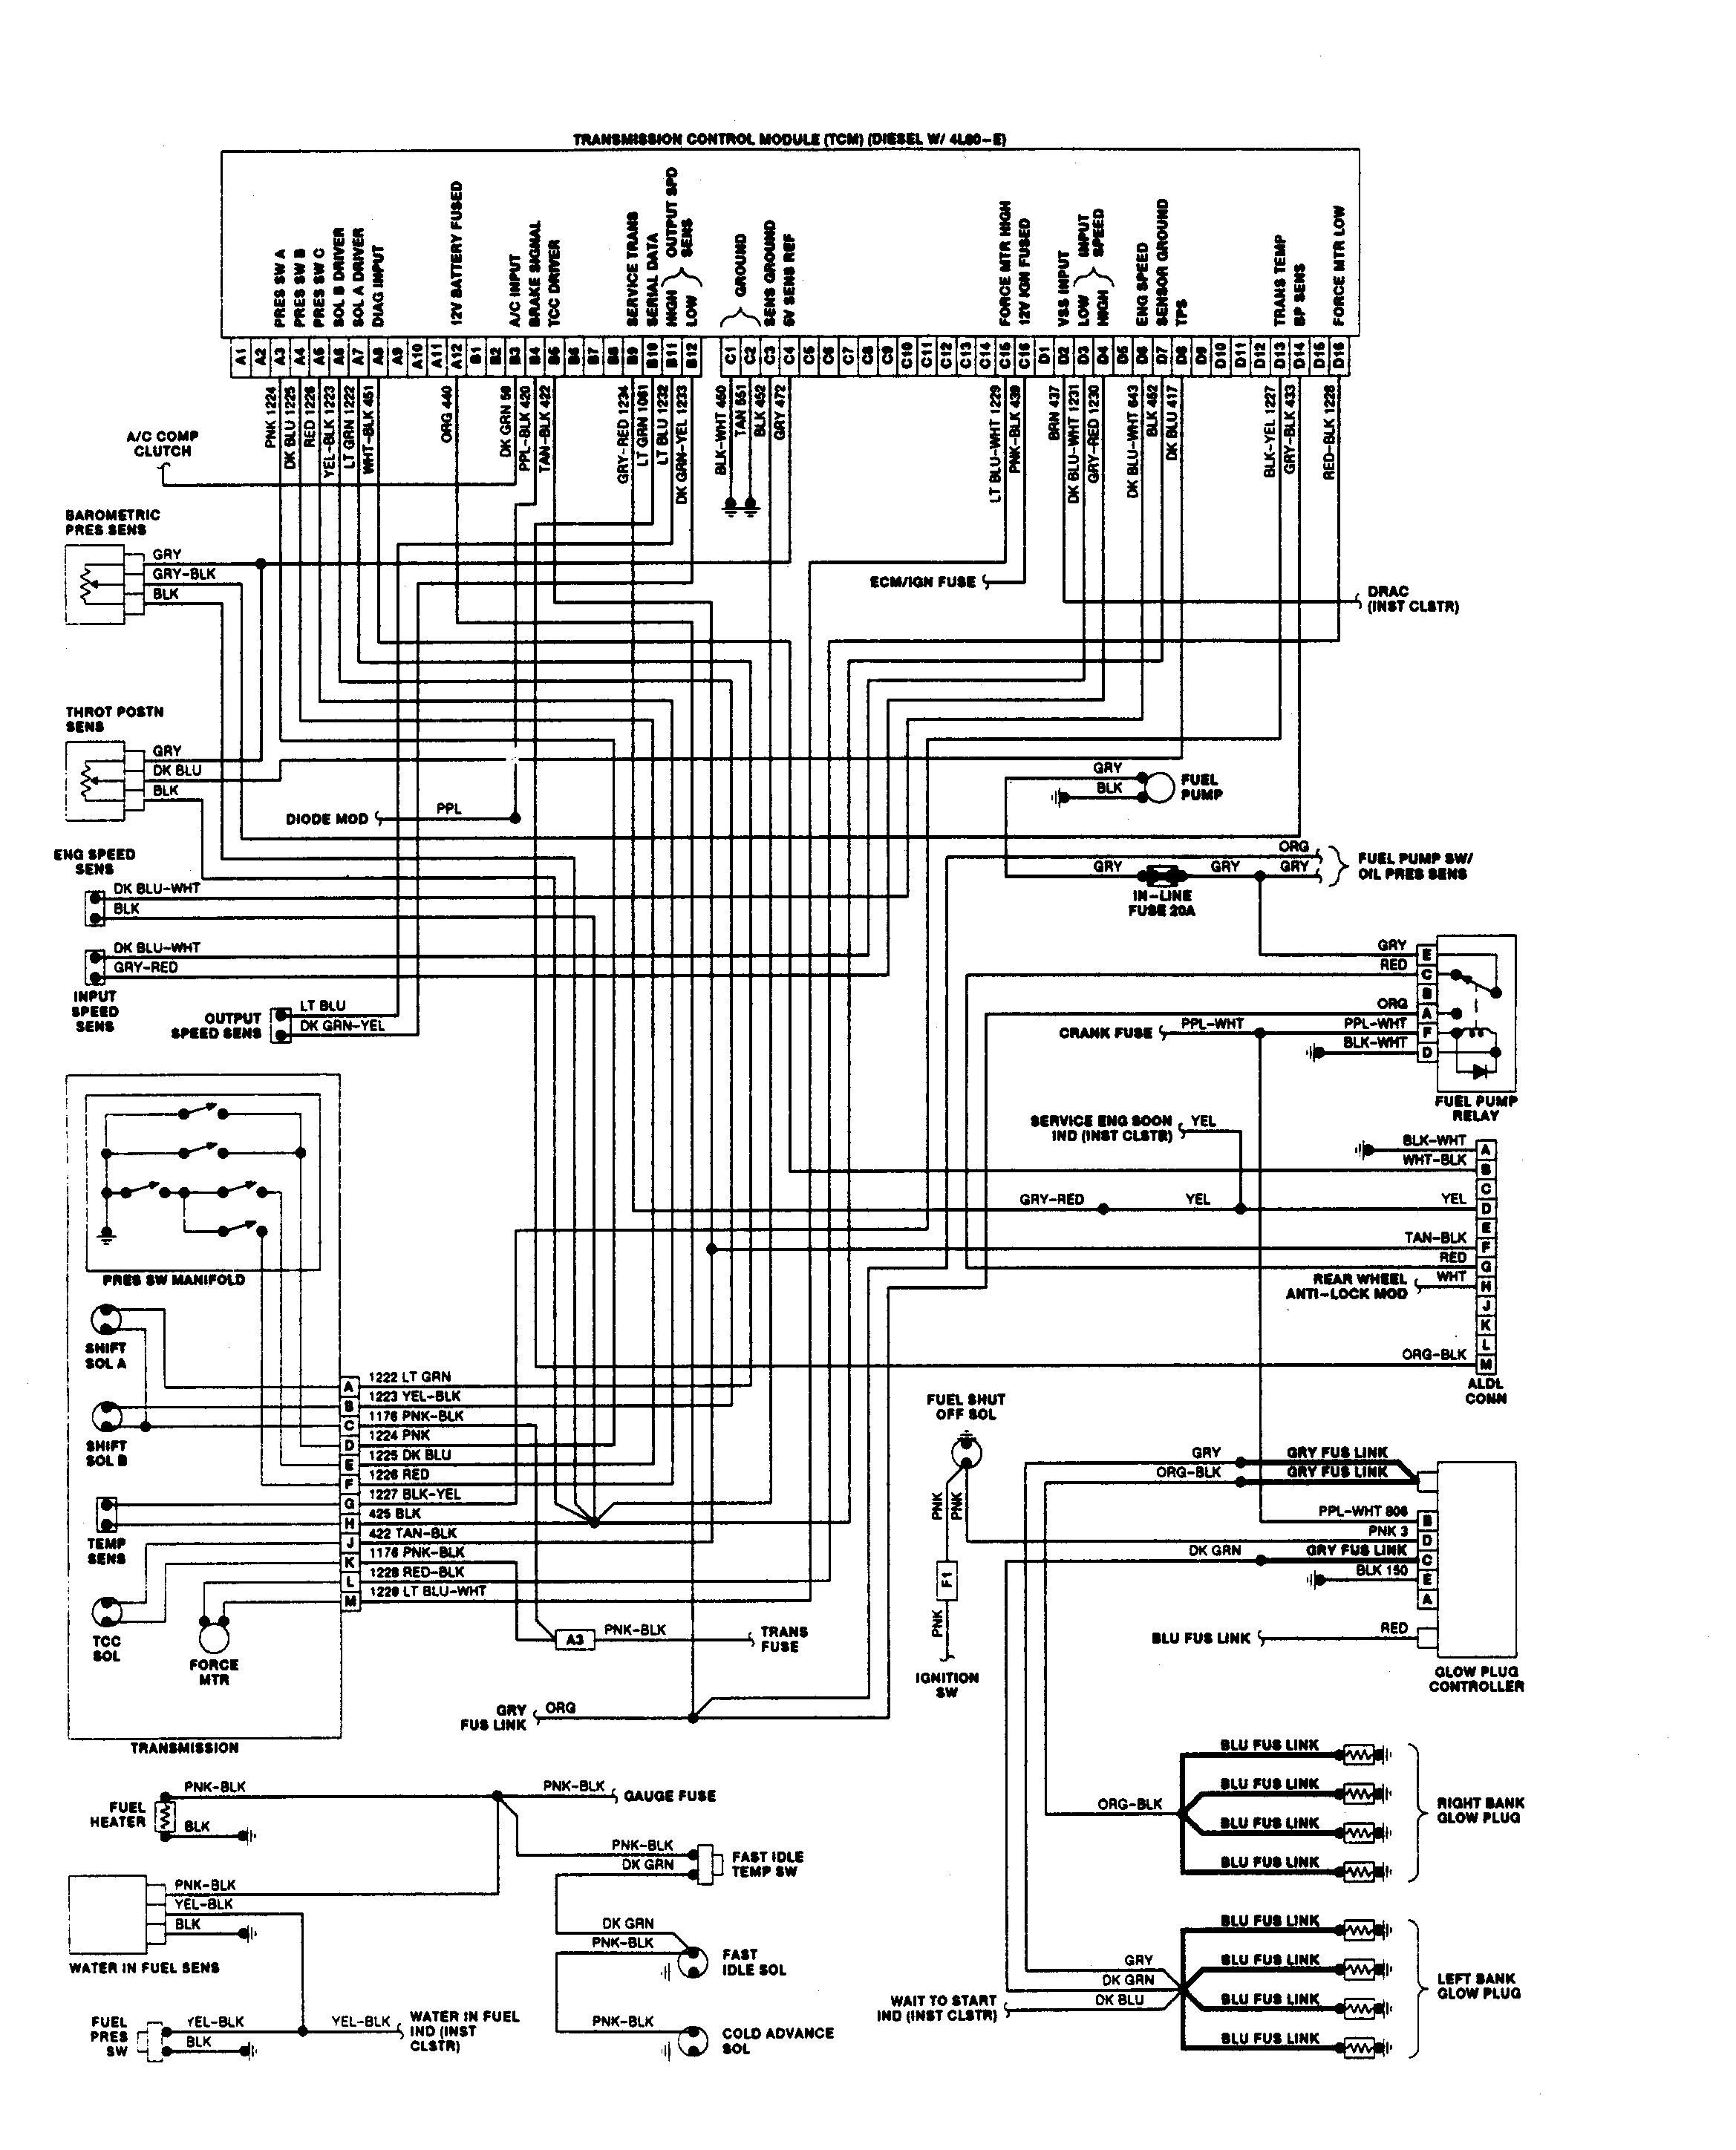 hight resolution of p30 ecu pinout diagram schematic wiring diagramp30 ecu pinout diagram wiring diagram 2007 ridgeline ecu wirimg